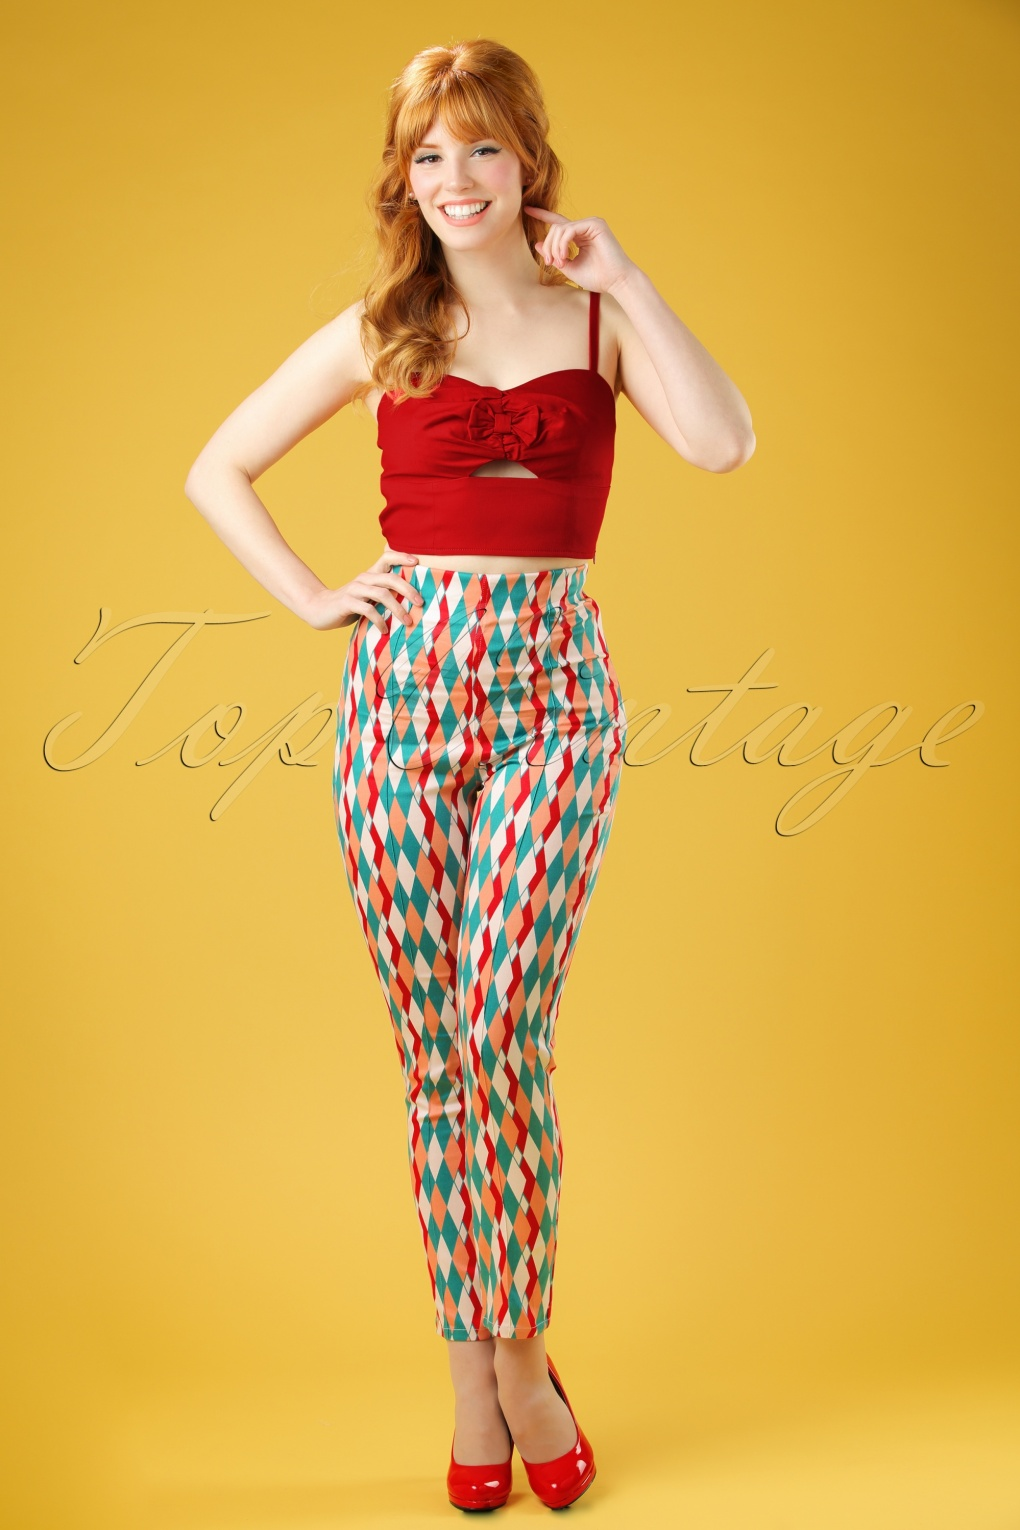 1960s Inspired Fashion: Recreate the Look 50s Bonnie Atomic Harlequin Trousers in Red and Jade £33.76 AT vintagedancer.com